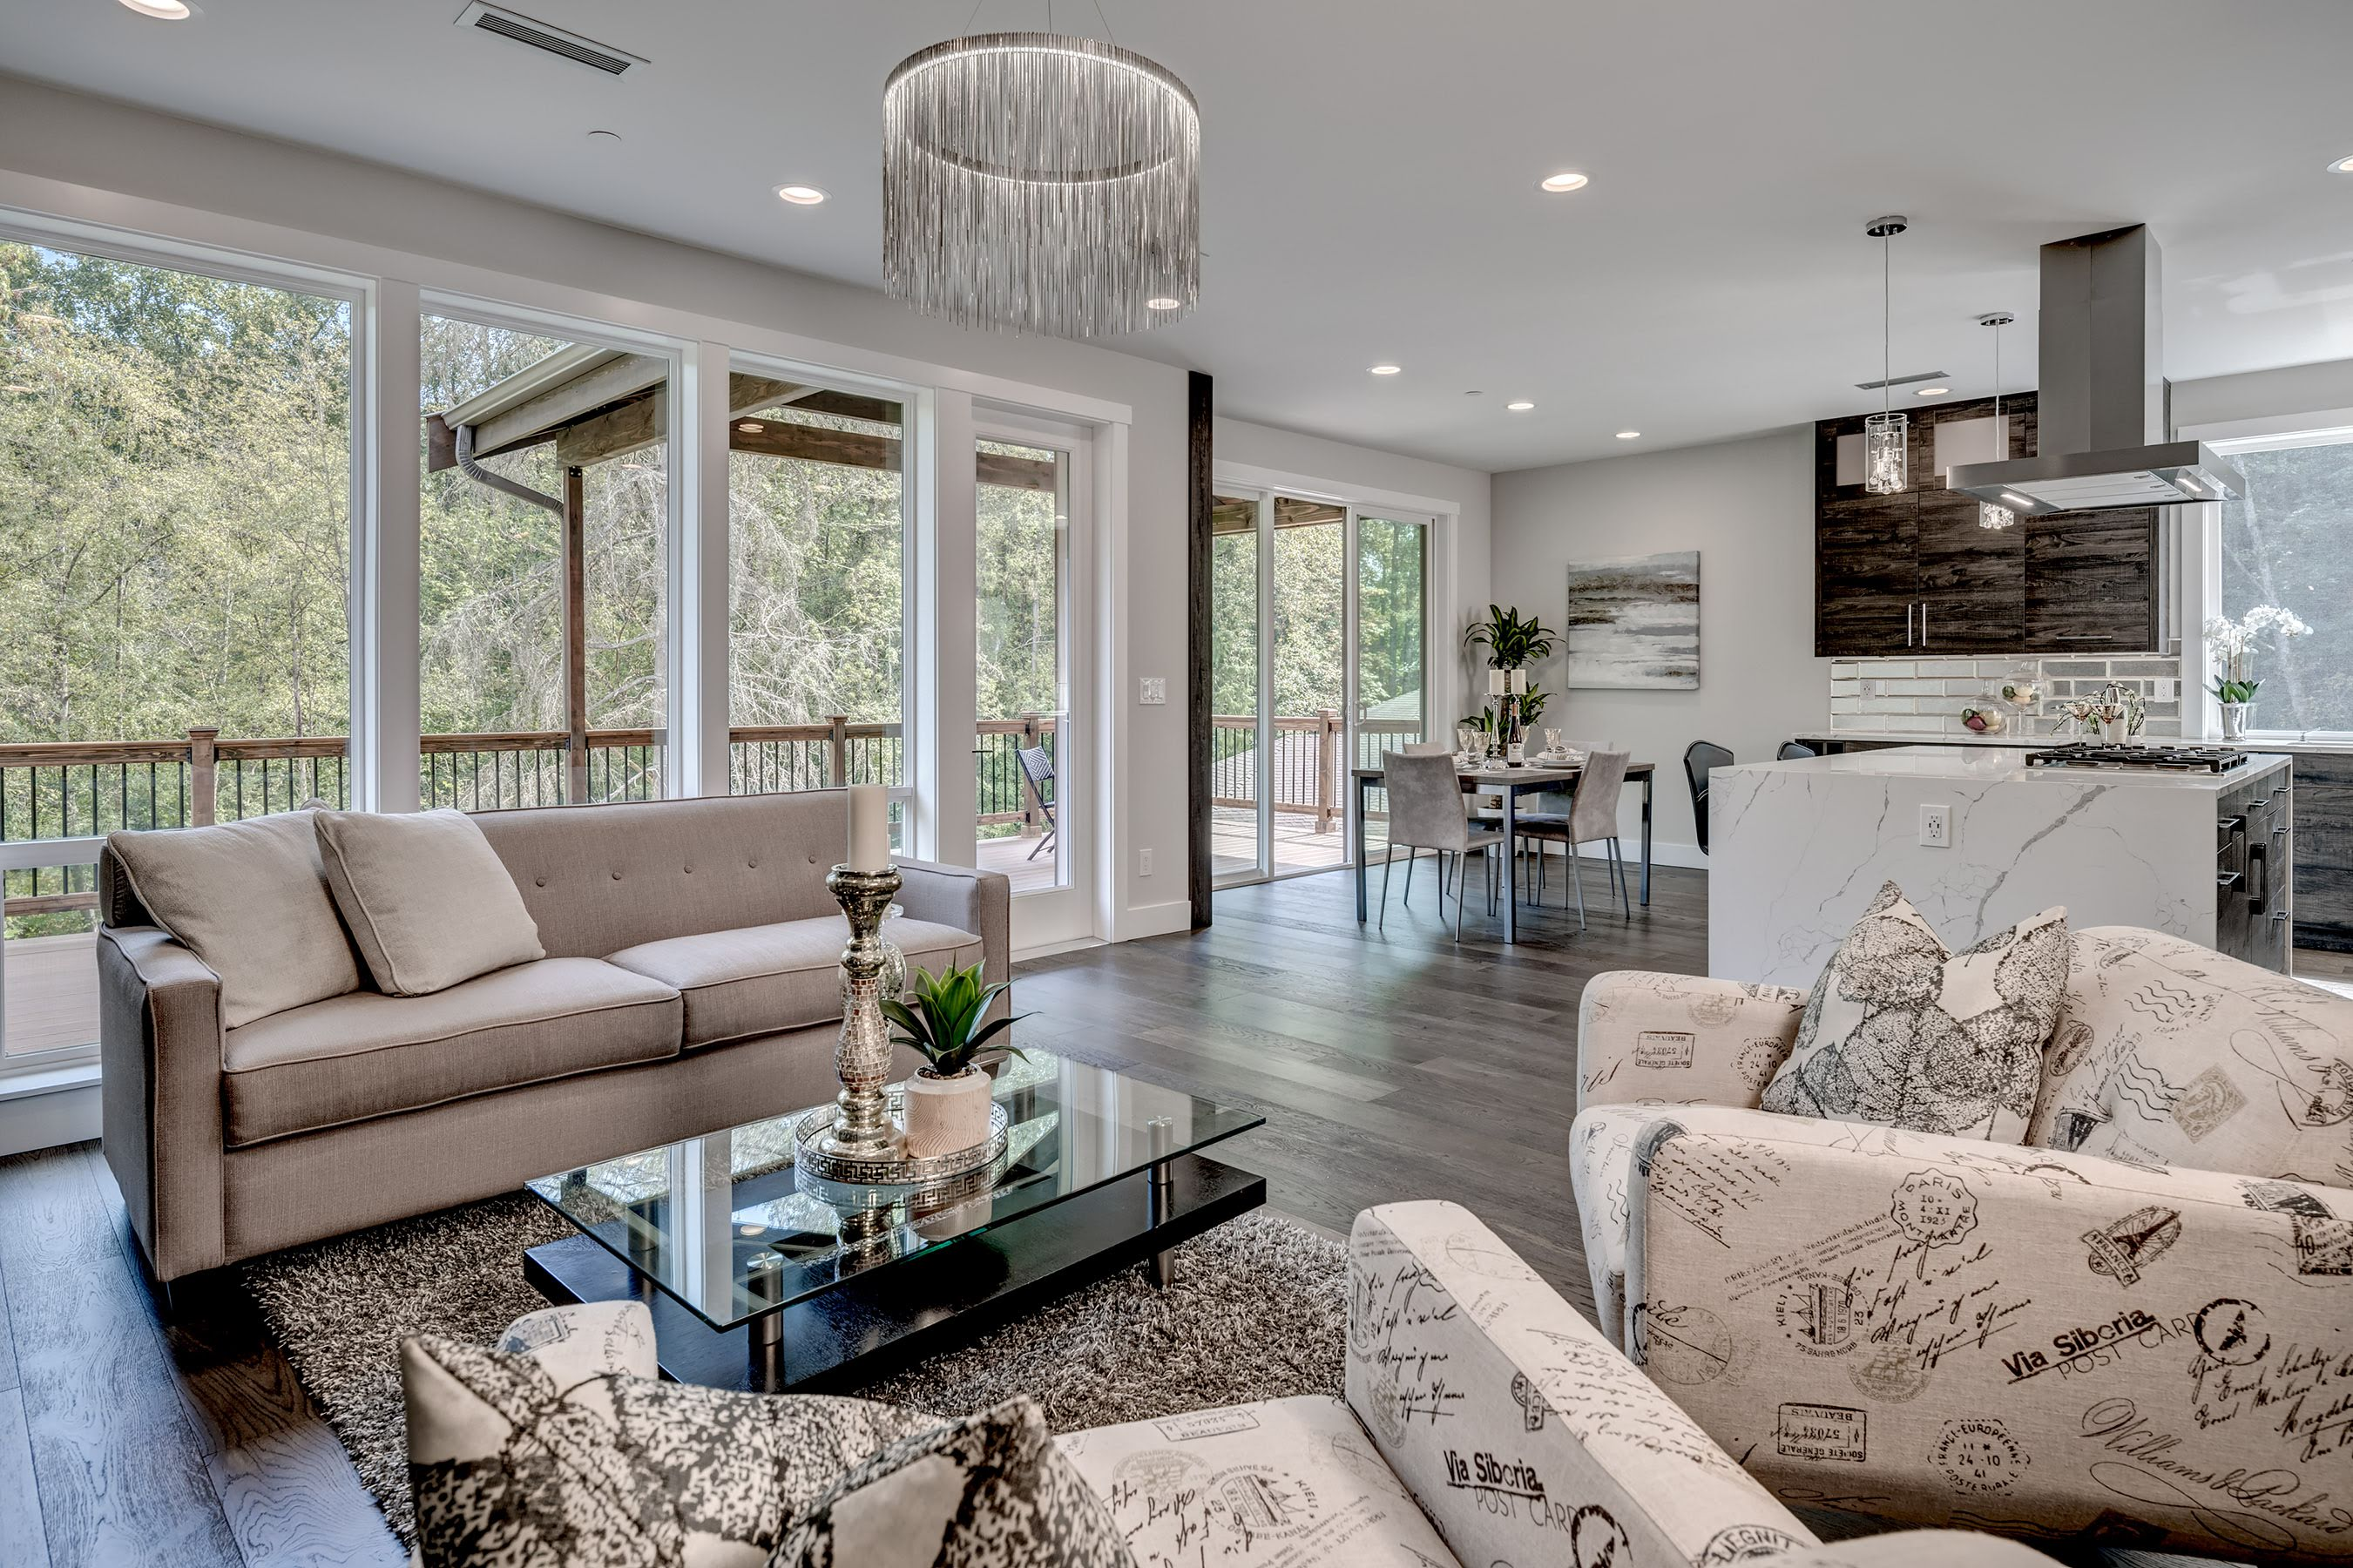 Home Remodel Gallery